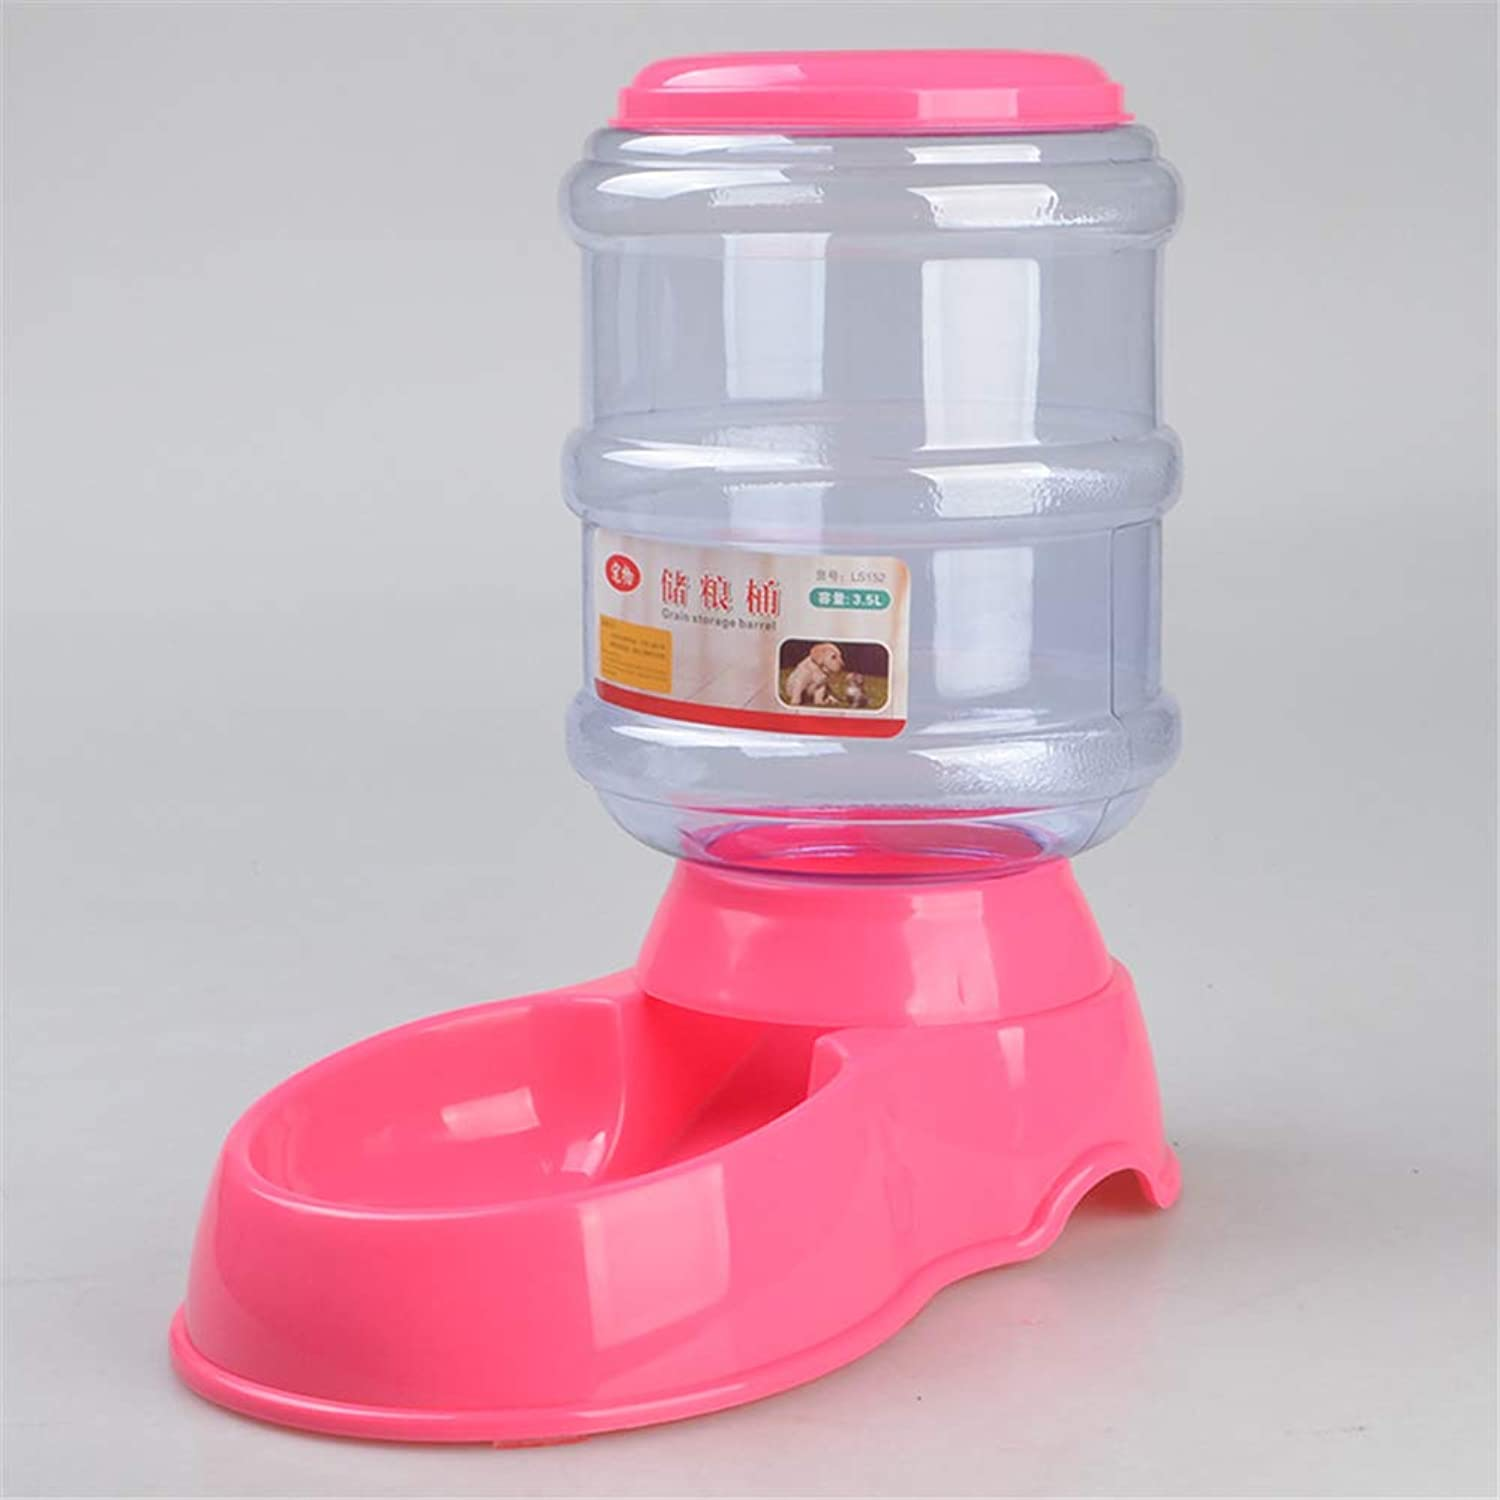 3.5L(1 gallon ) Pet Feeder or Waterer SelfDispensing Gravity for Dogs Cats & Small Animals